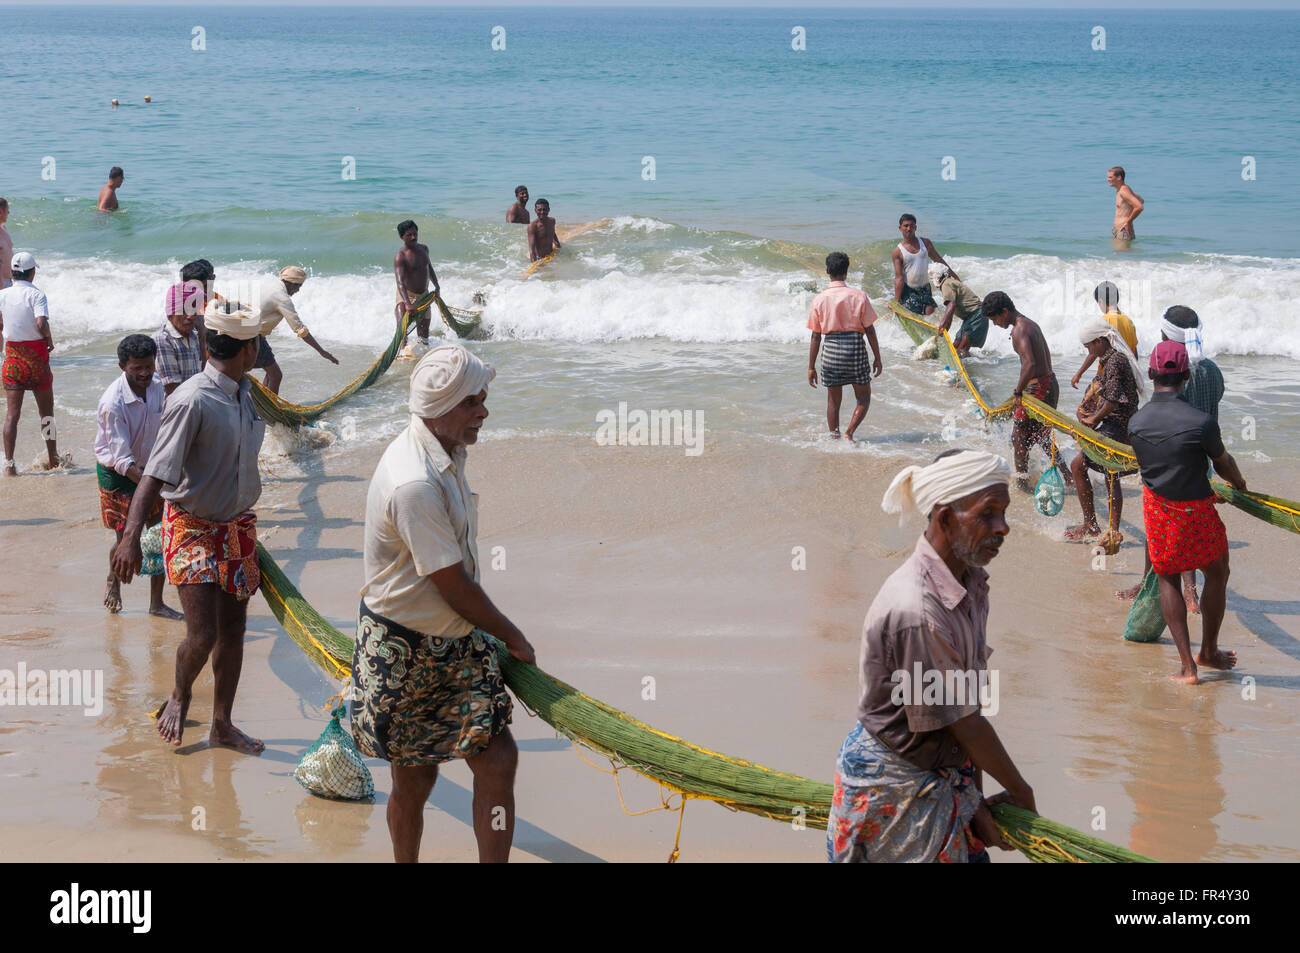 Seine-haul fishing of Kerala - Stock Image